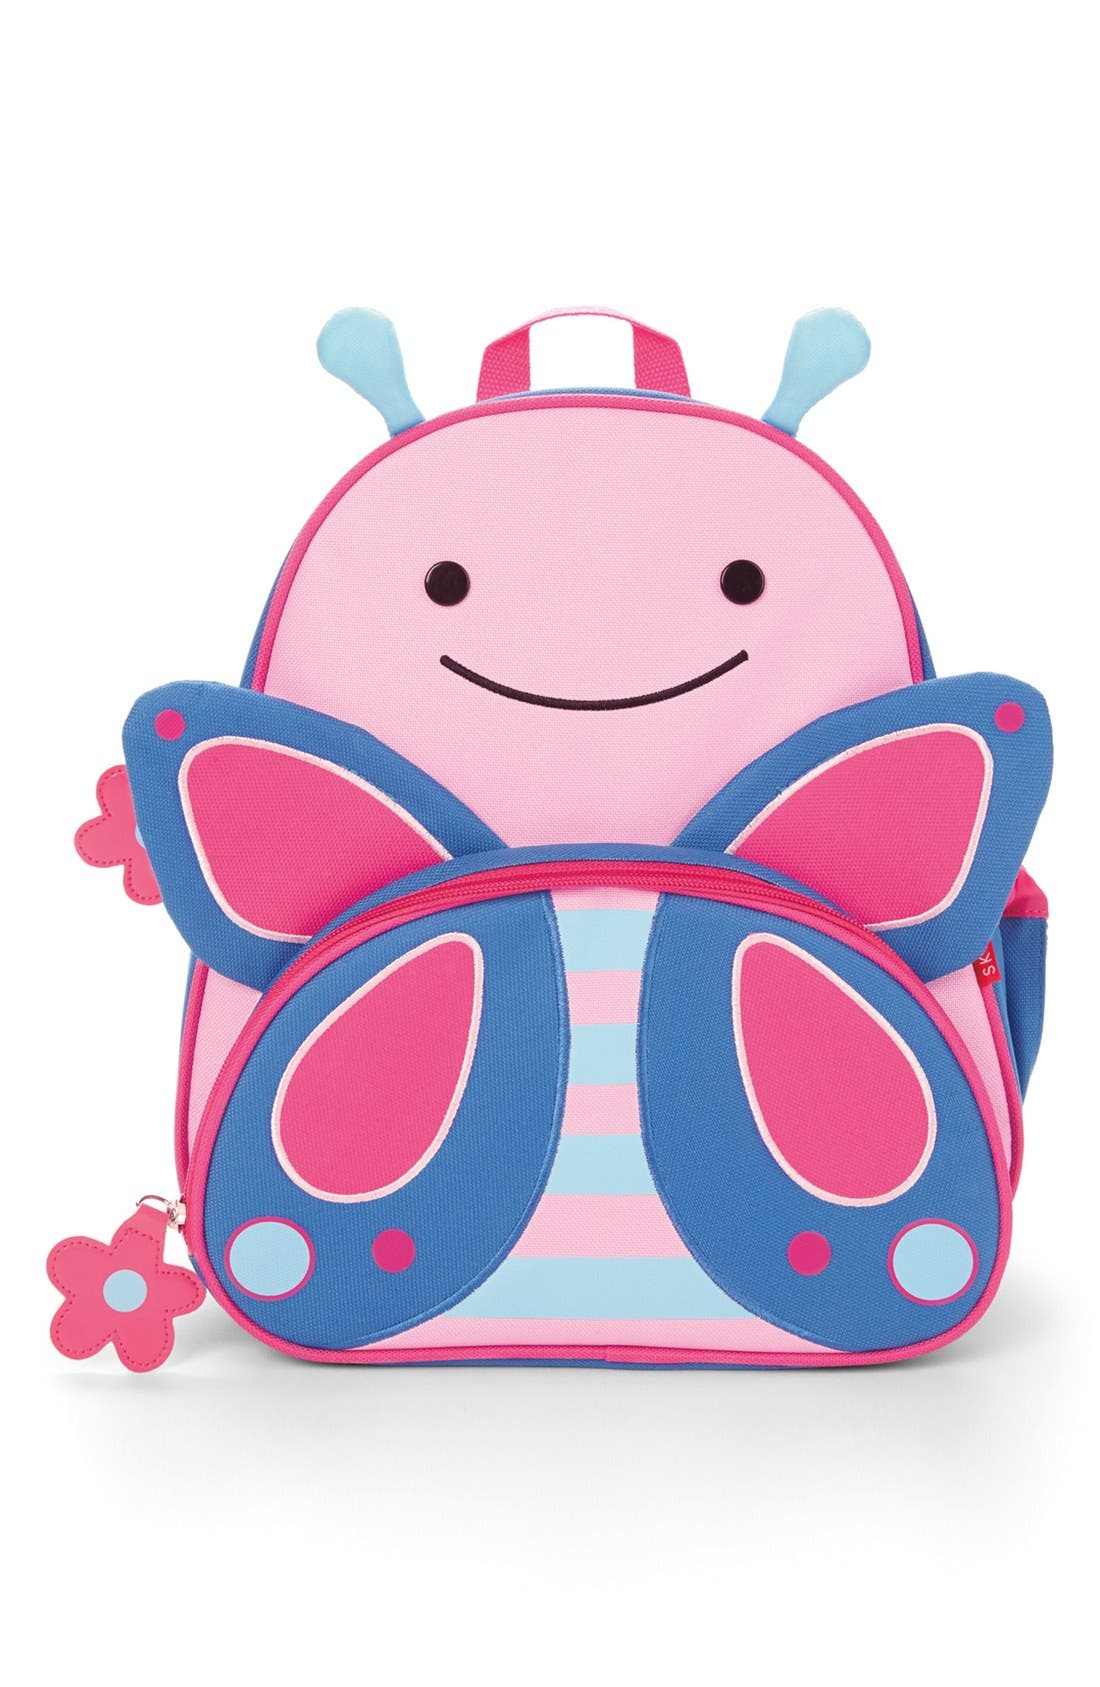 Zoo Pack Backpack,                         Main,                         color, Pink Solid